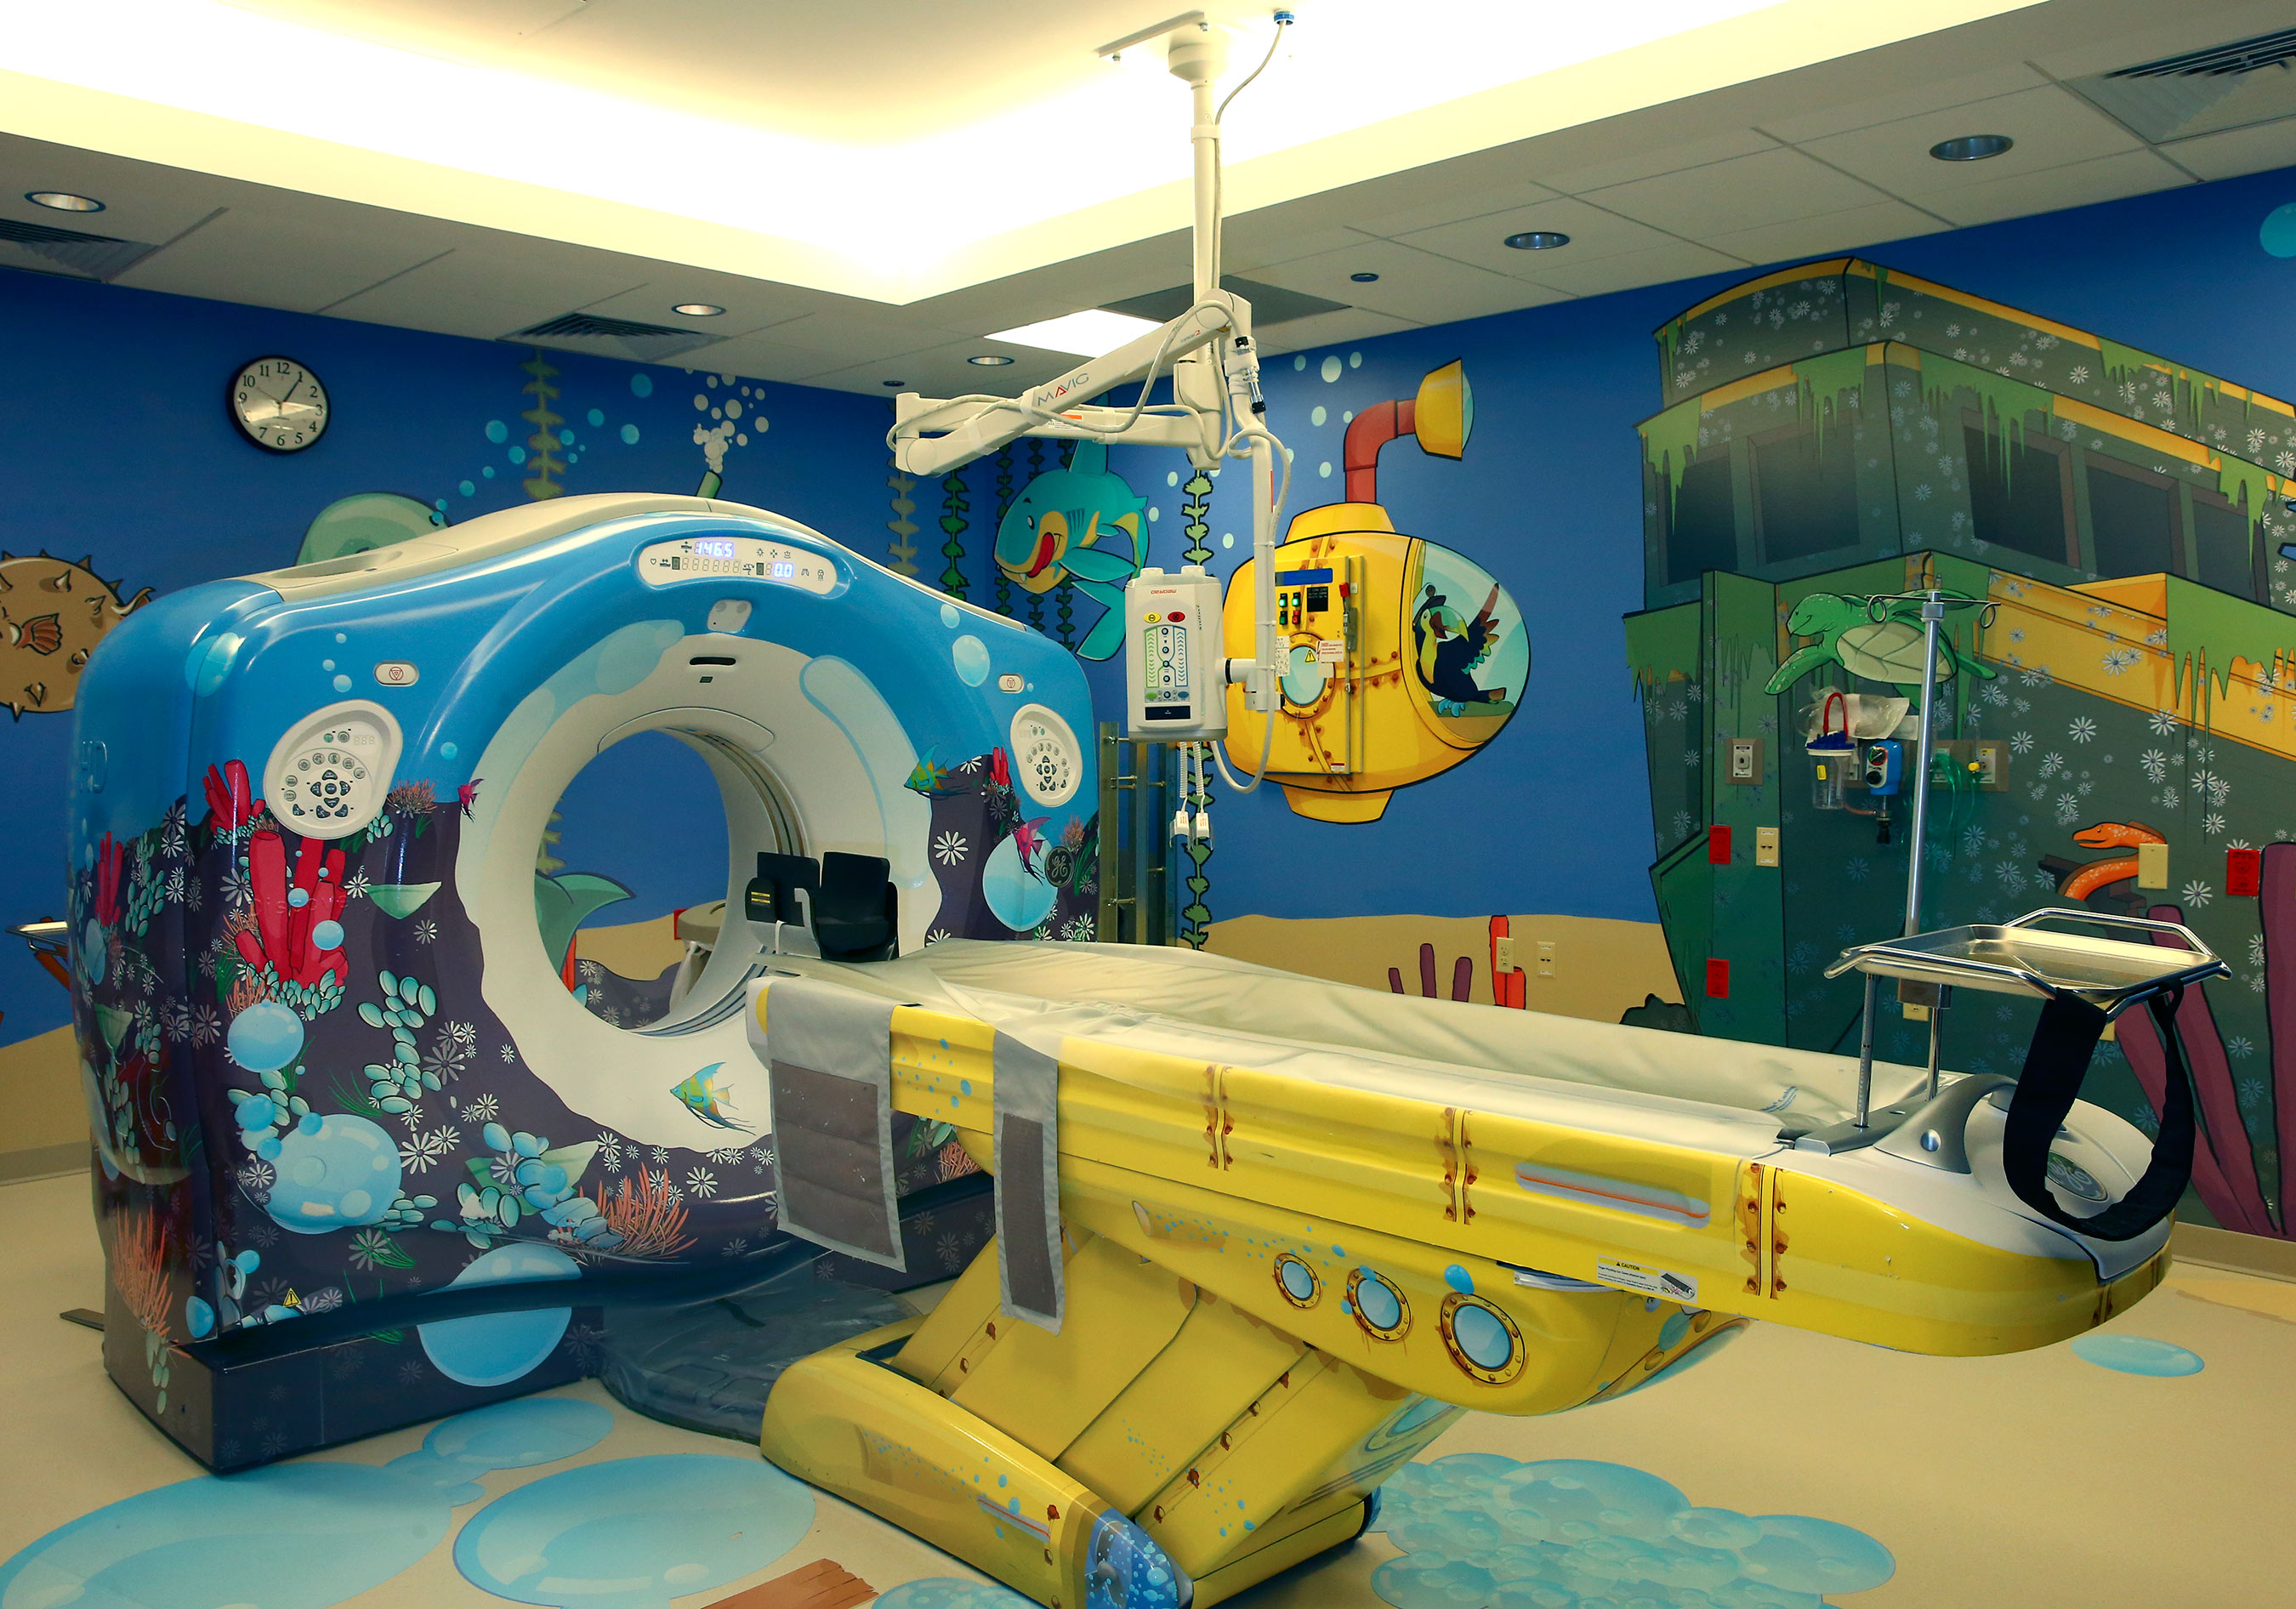 Kid-friendly Hospital Scans